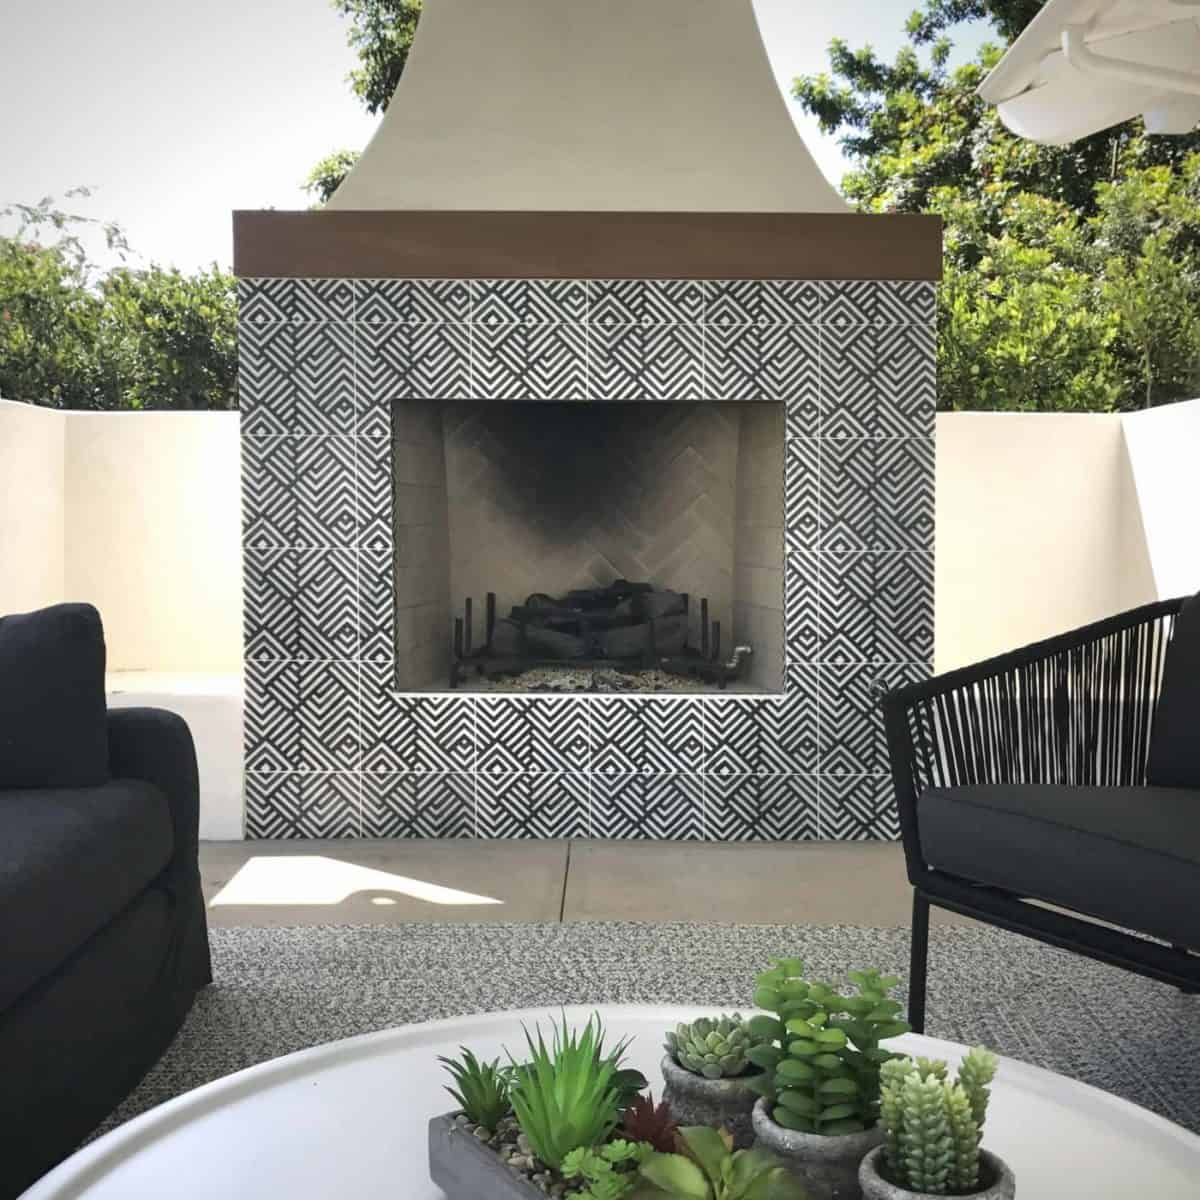 Waterways pattern in black on carrara featured as fireplace